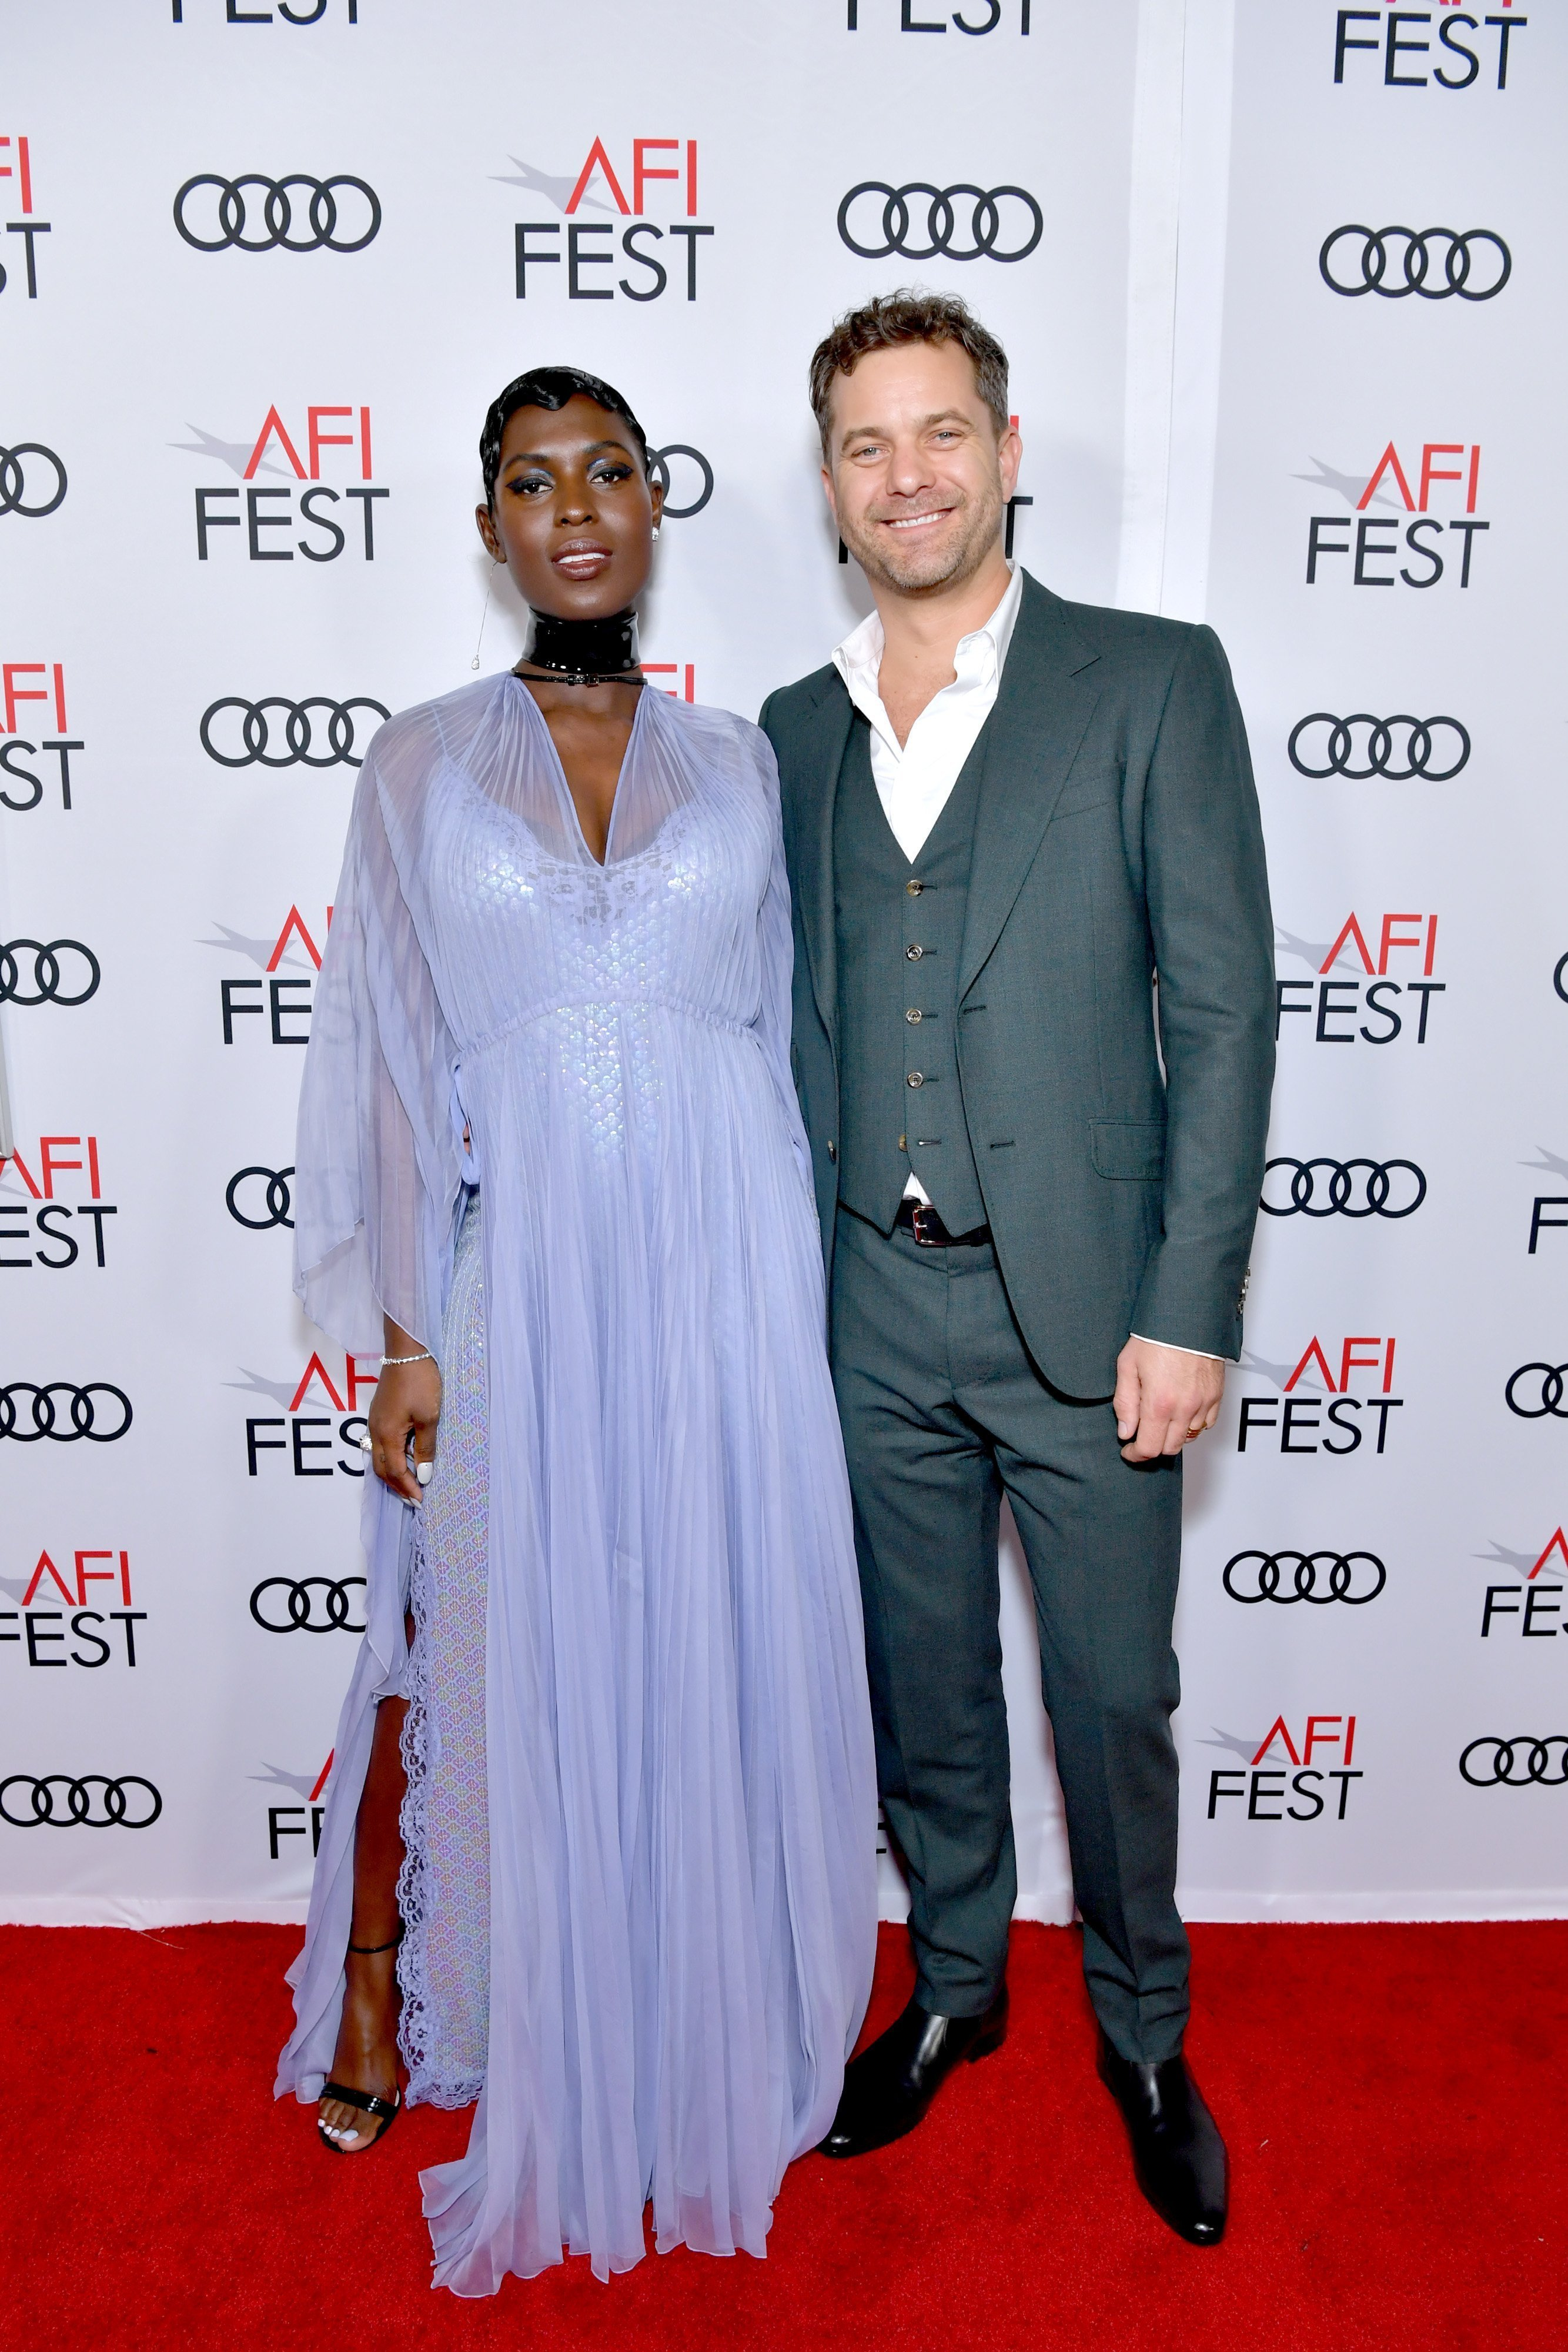 """Joshua Jackson and Jodie Turner-Smith at the """"Queen & Slim"""" premiere in November 2019. 